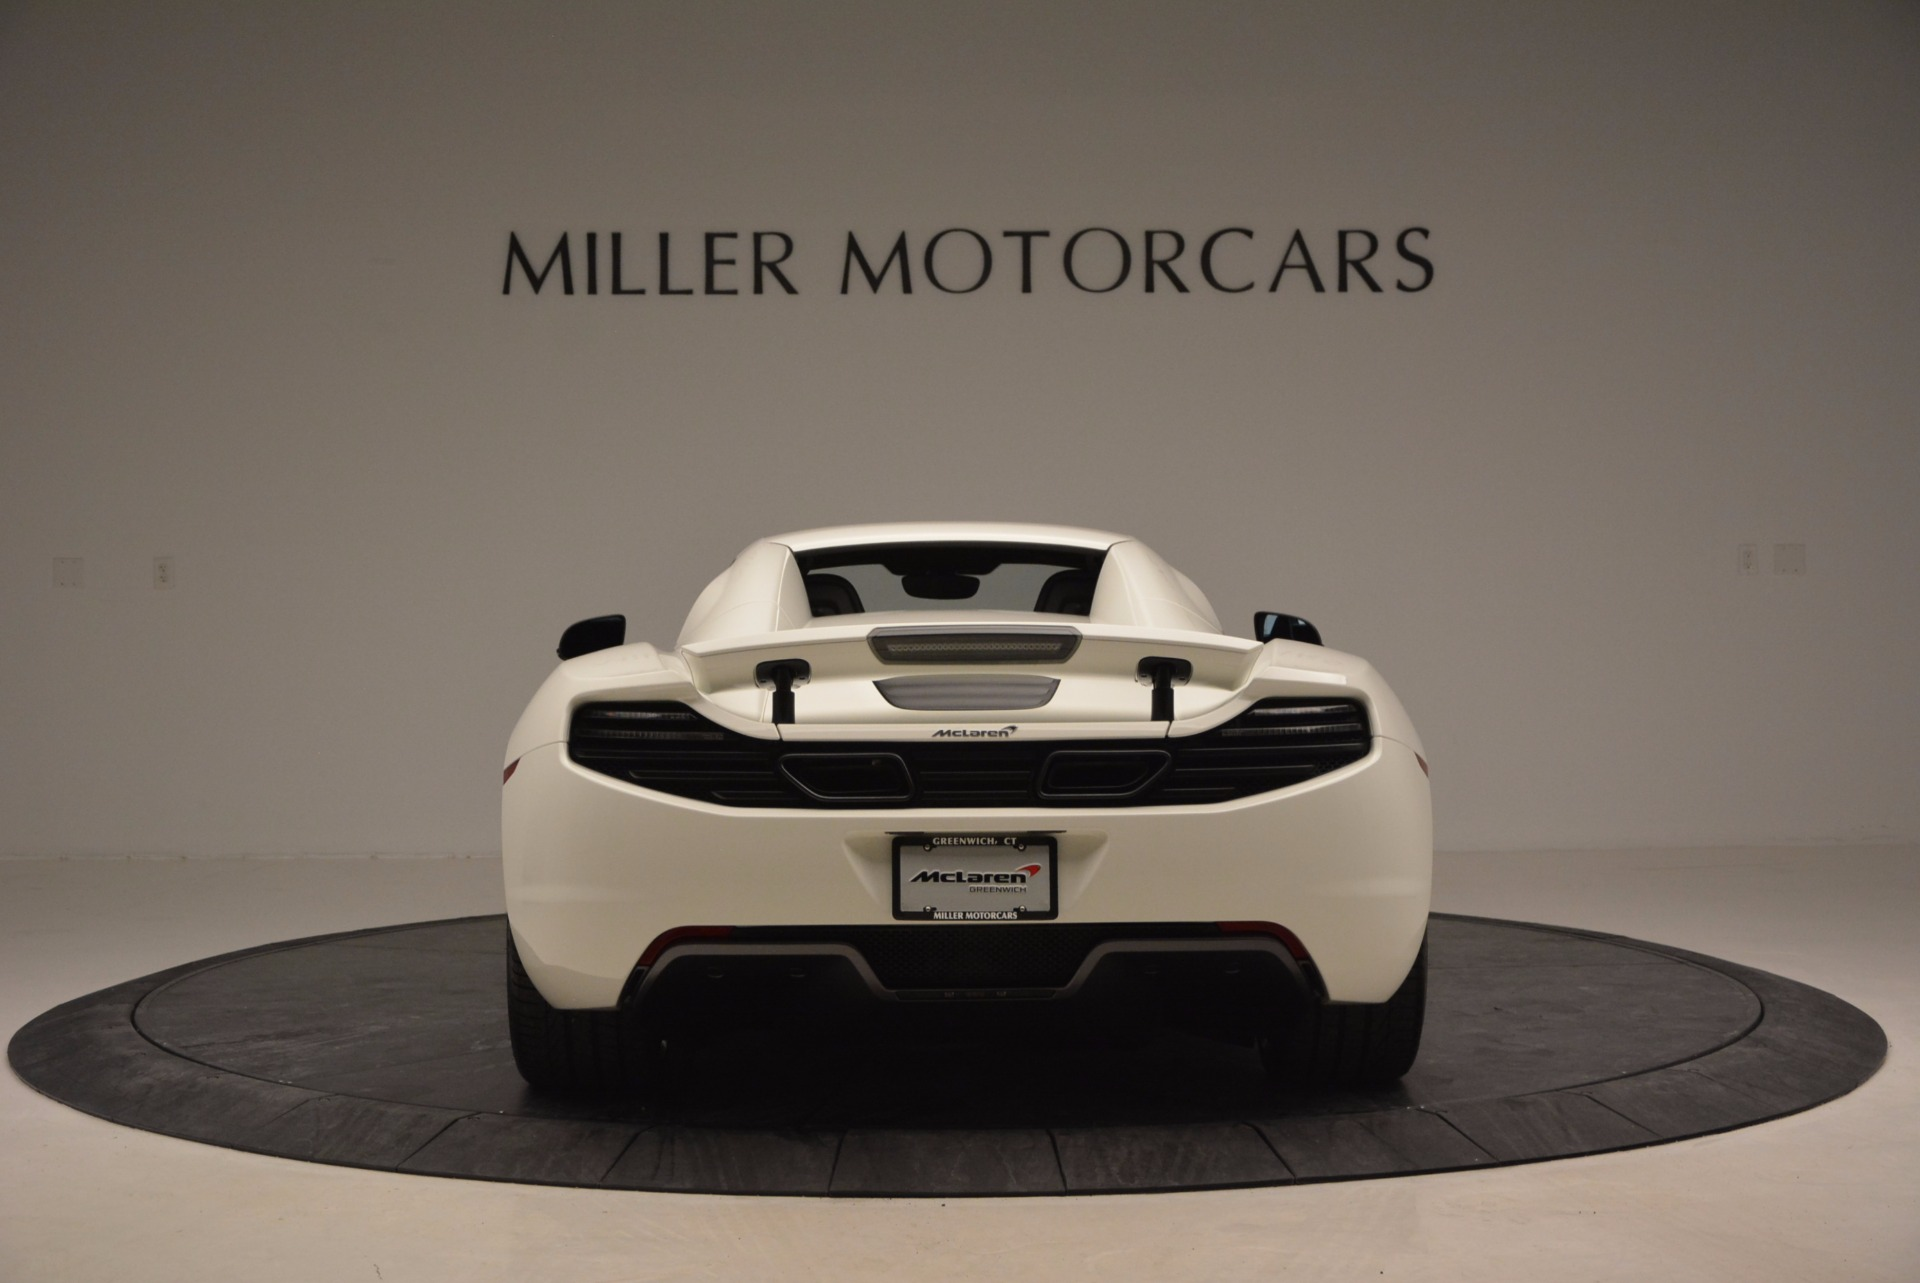 Used 2014 McLaren MP4-12C Spider For Sale In Greenwich, CT. Alfa Romeo of Greenwich, 3136 908_p17